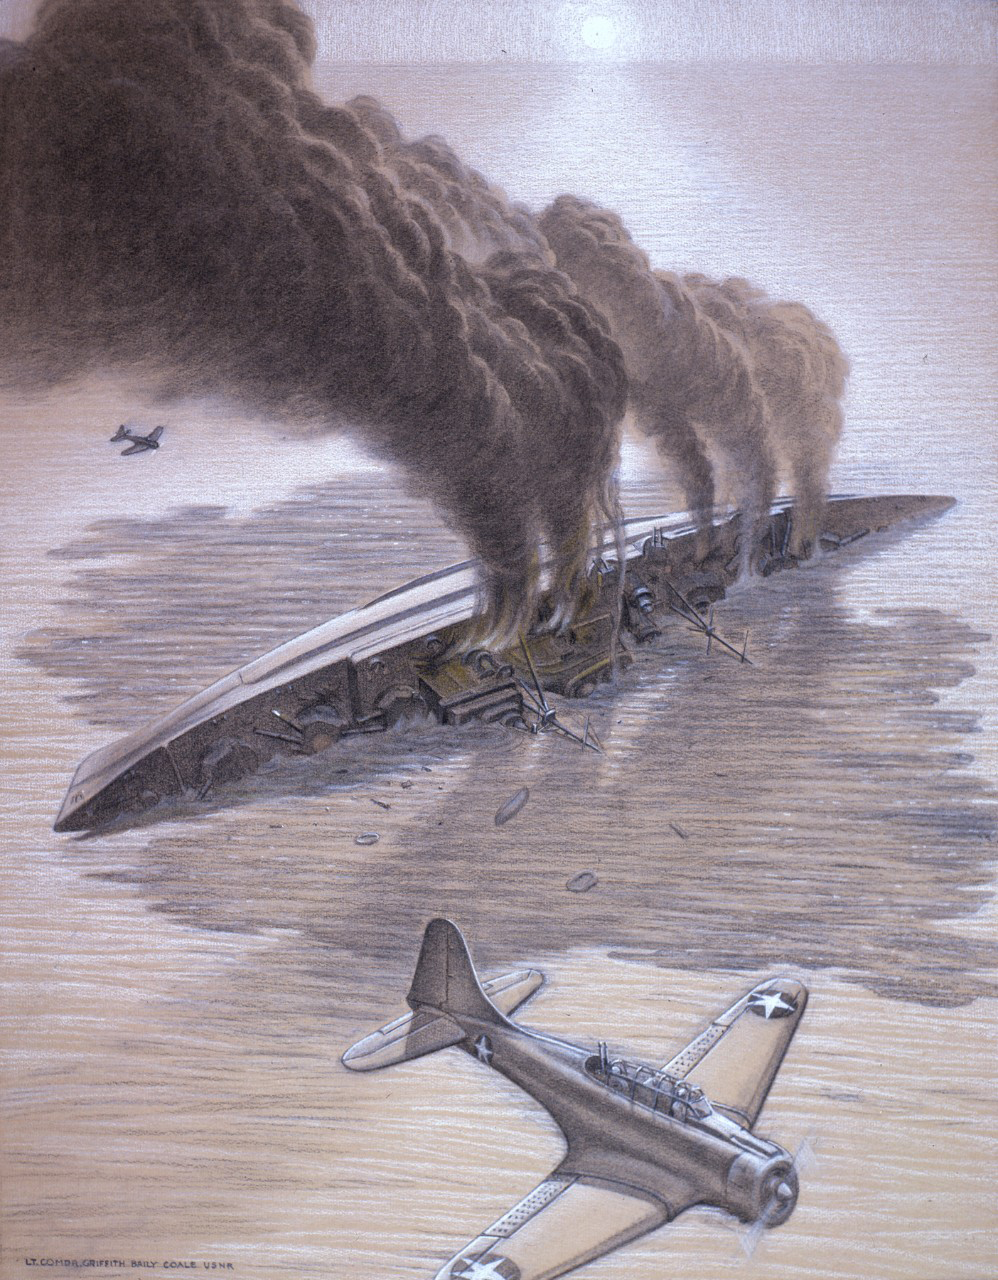 Charcoal drawing of boat on its side in the ocean with smoking billowing out and a plane flying overhead.